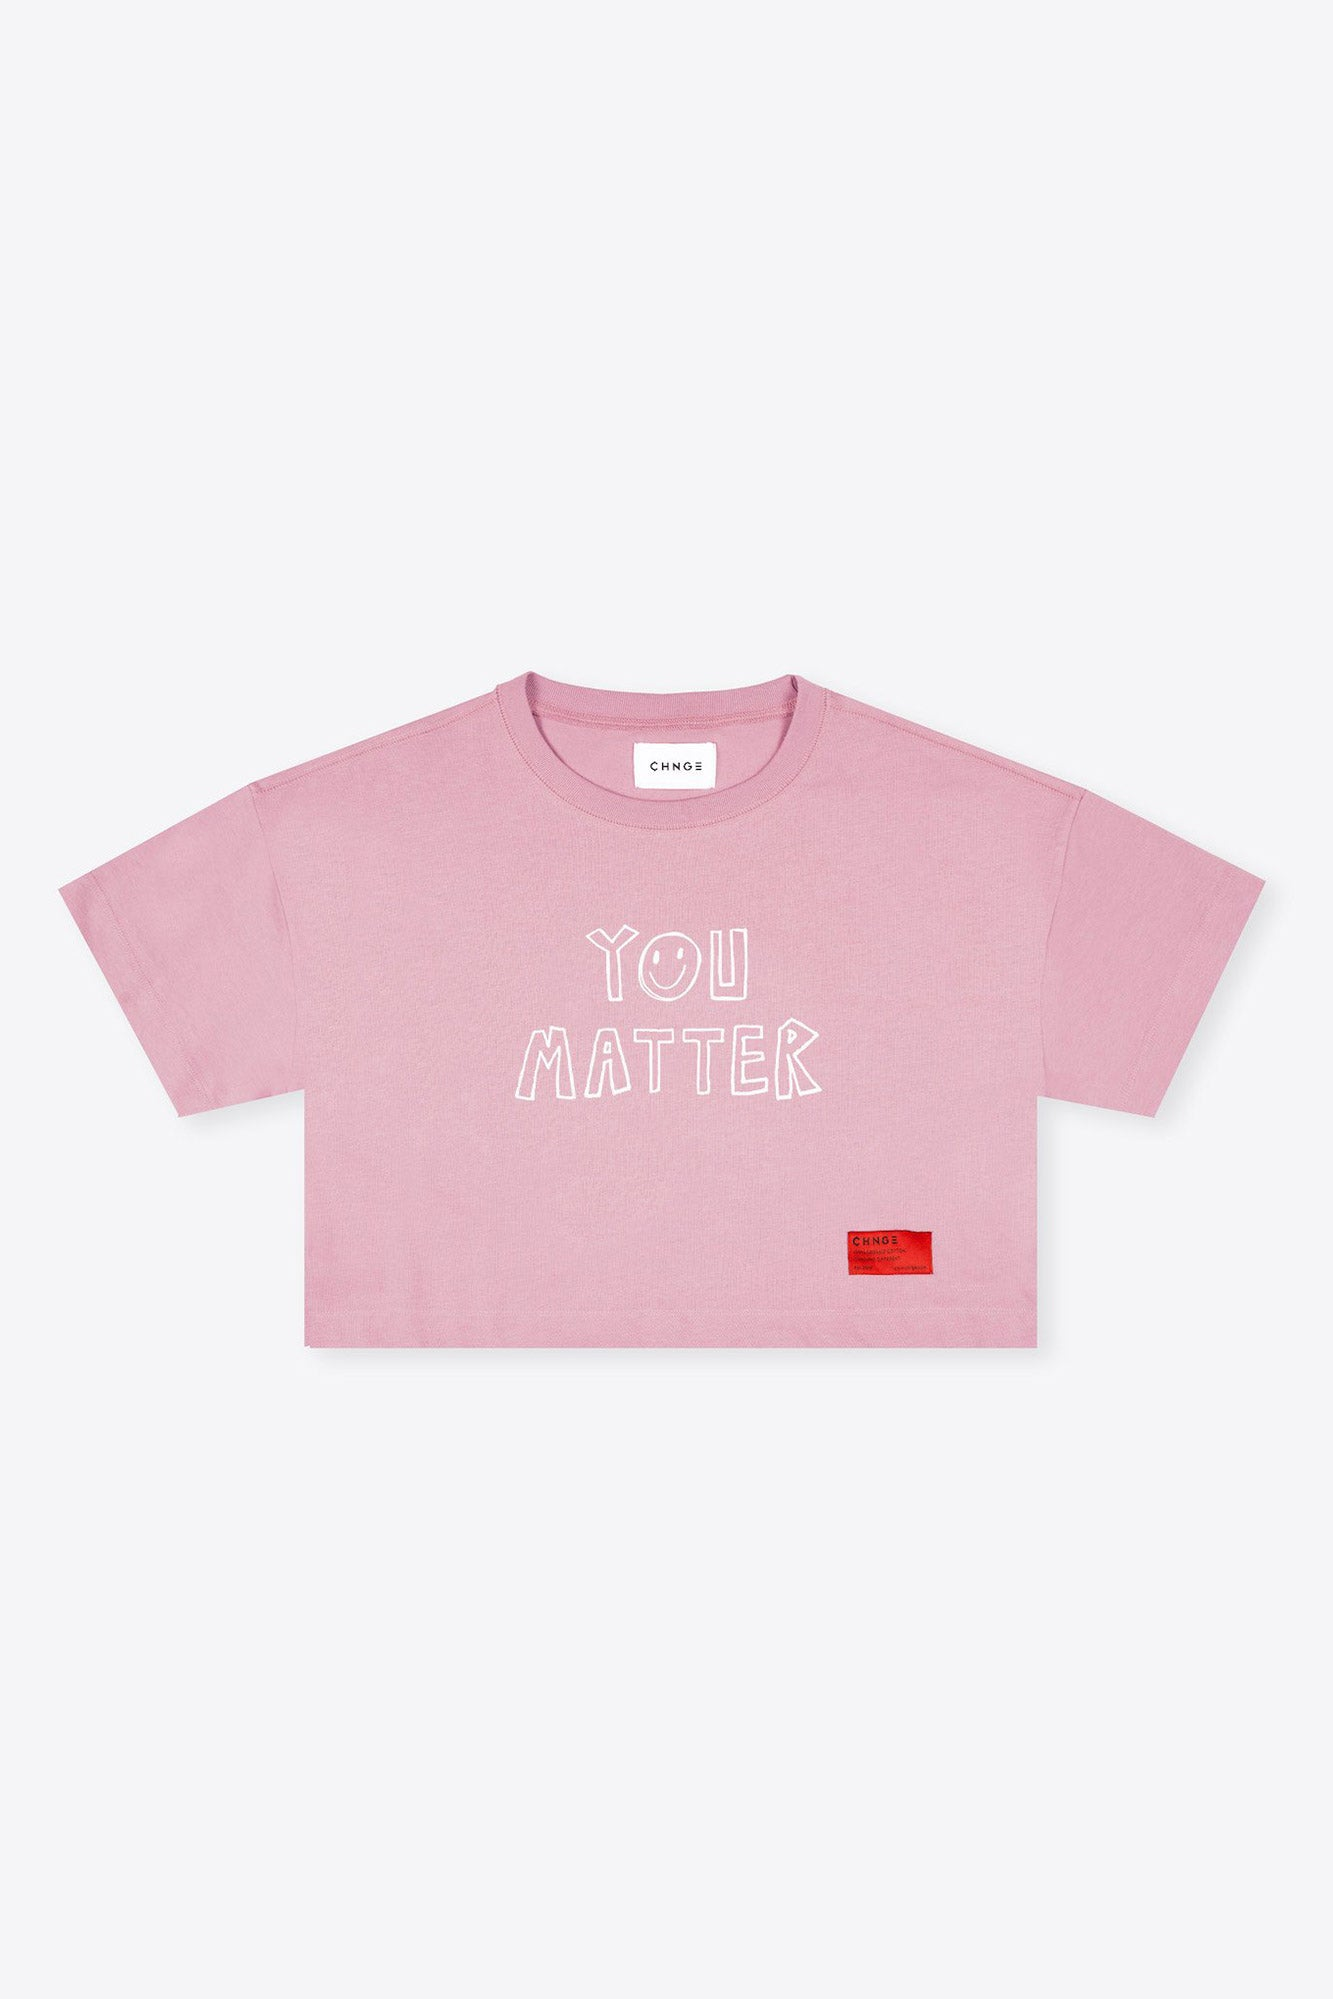 You Matter Crop (Mauve)